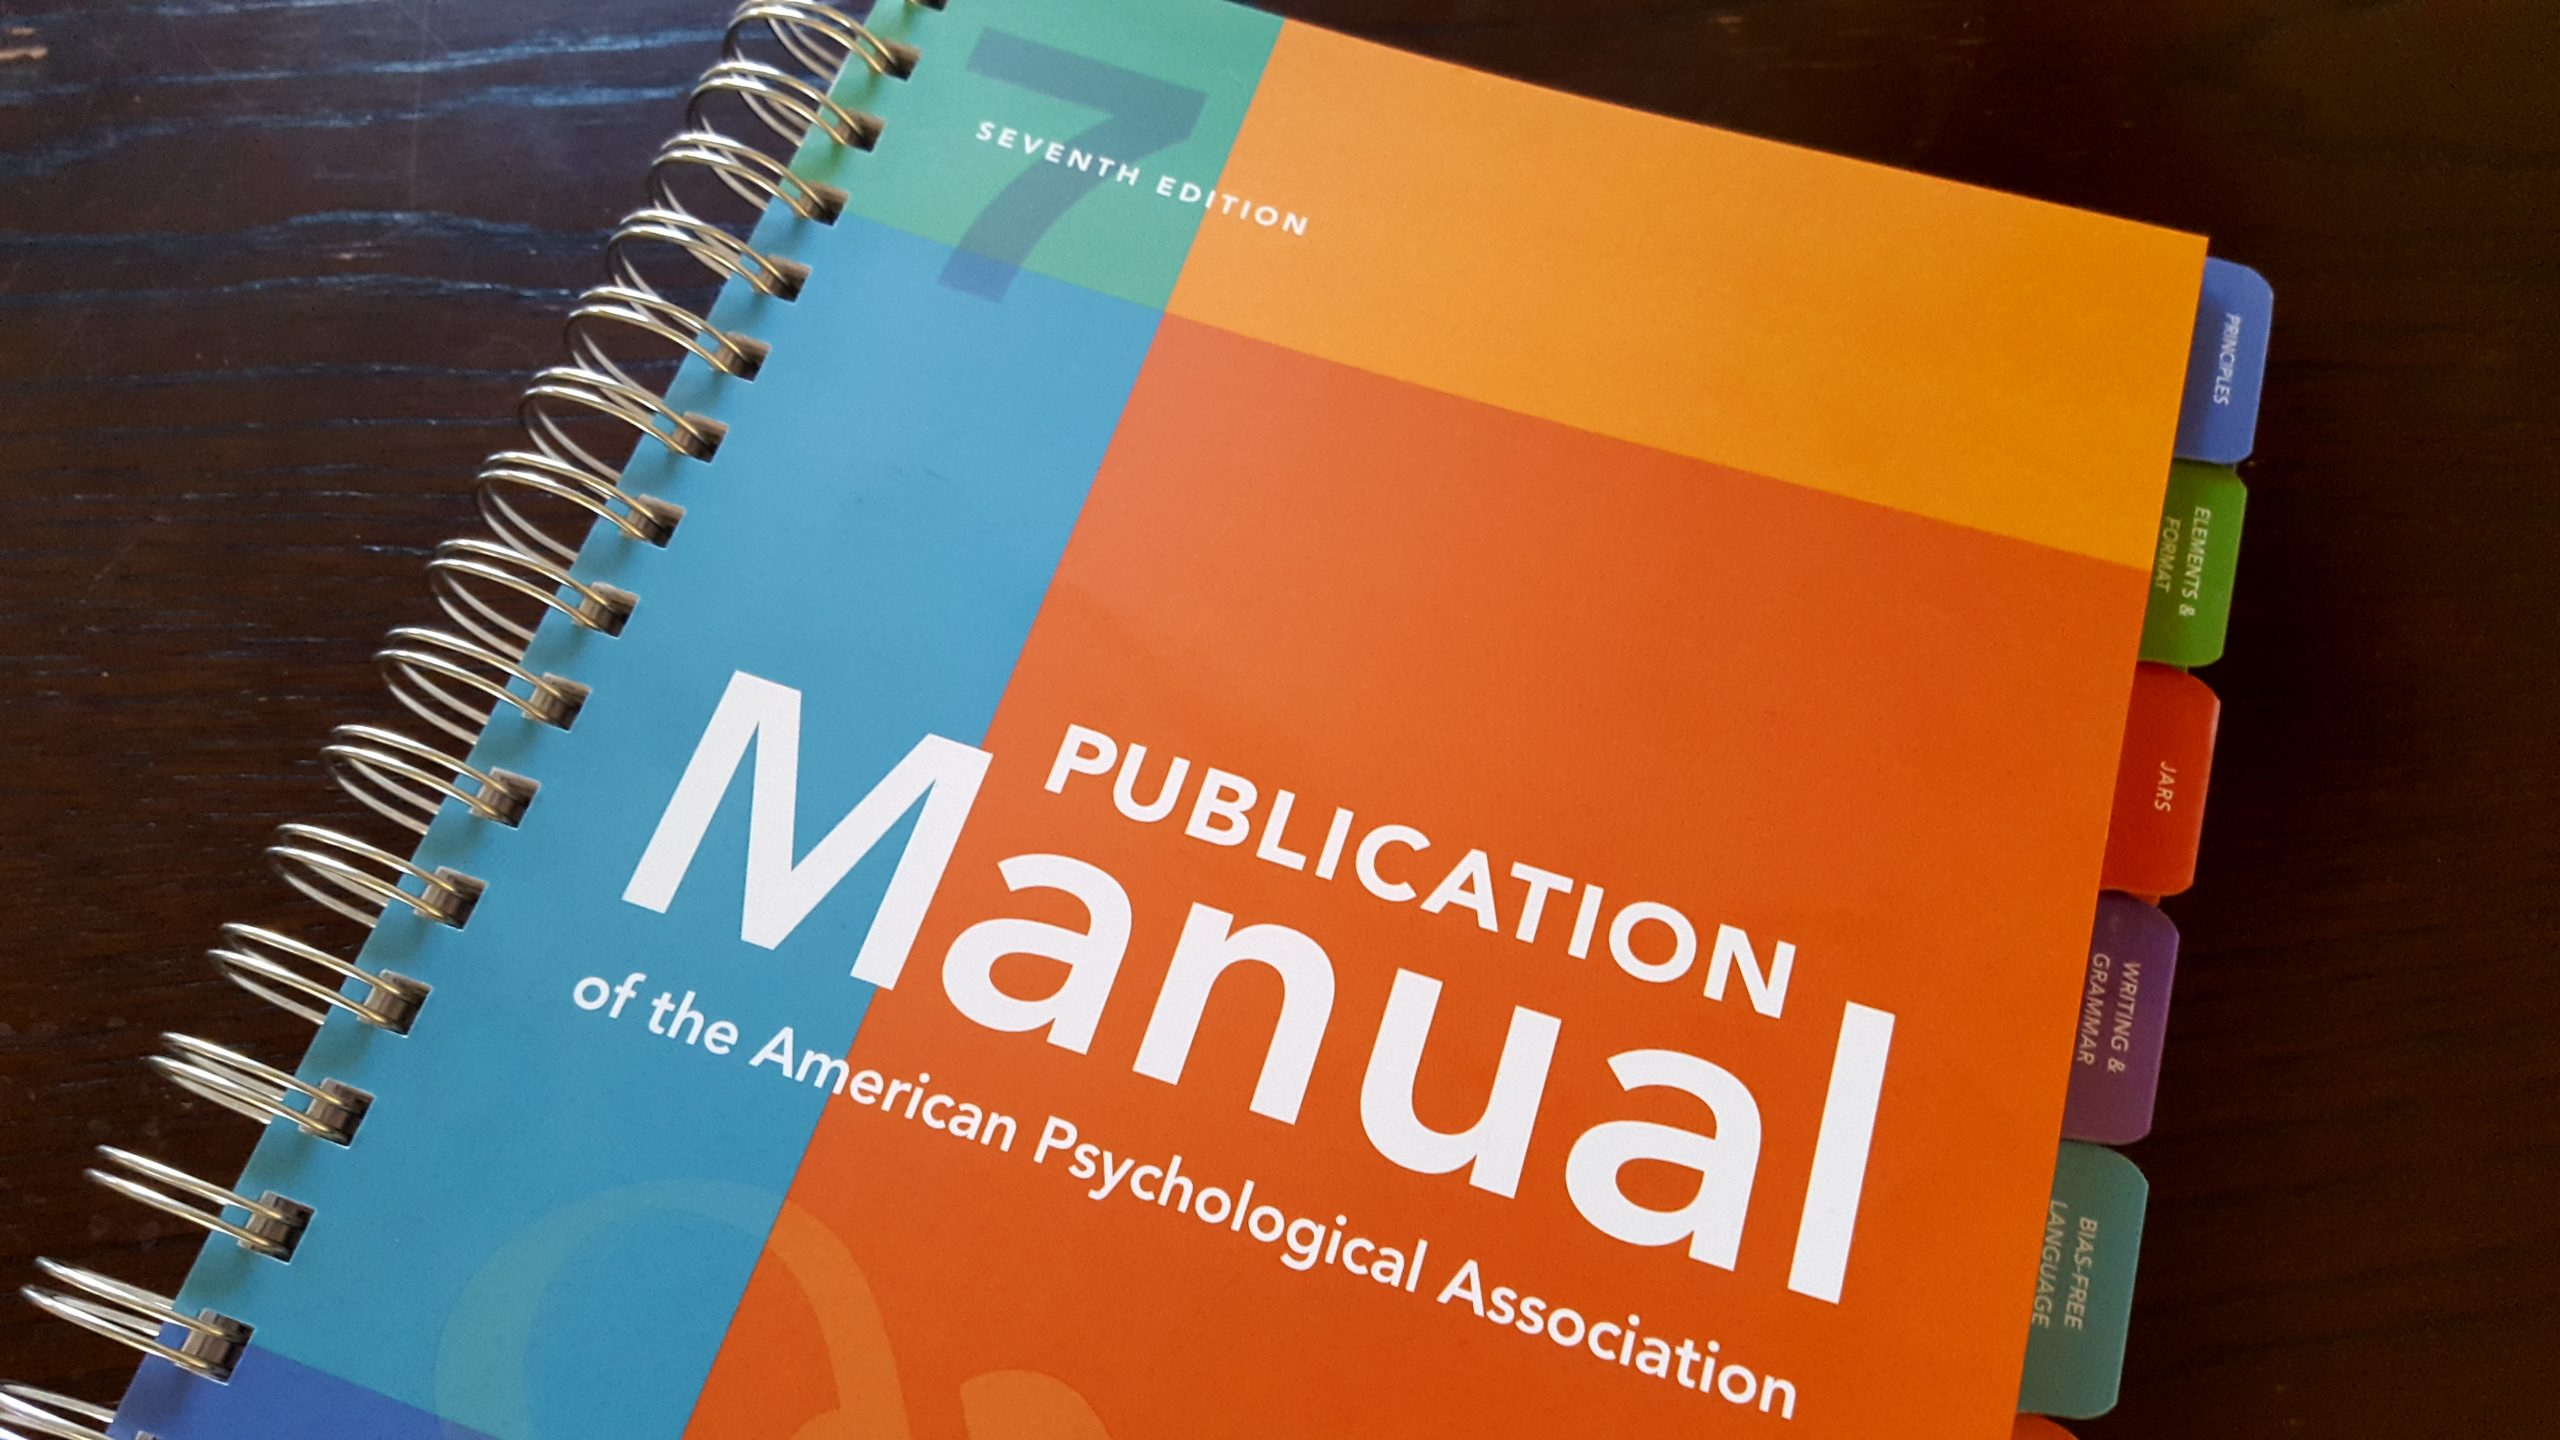 Cover of APA 7th publication manual spiral-bound tabbed edition